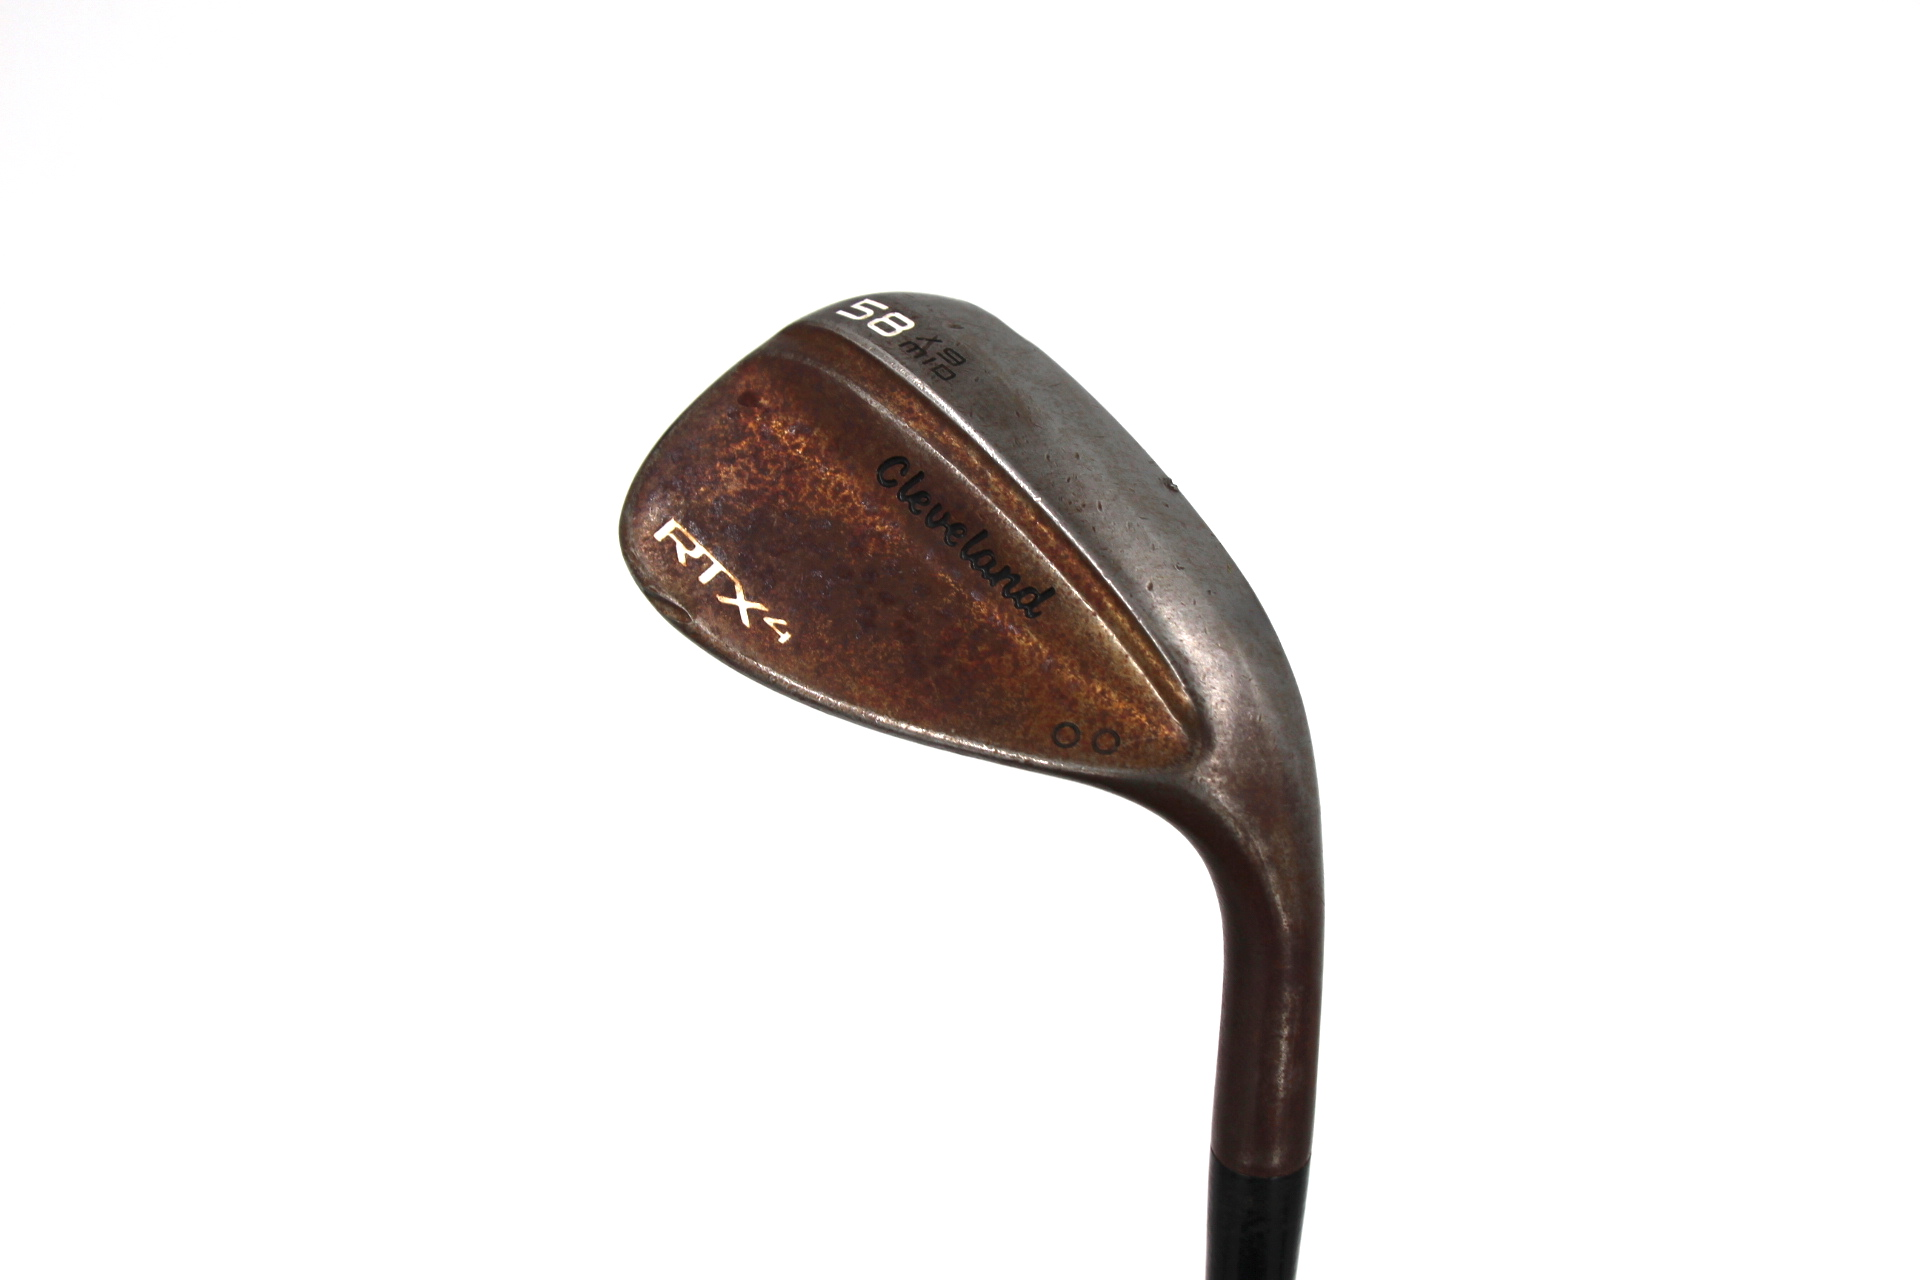 Cleveland RTX-4 Mid Grind Tour Raw 58″ Wedge